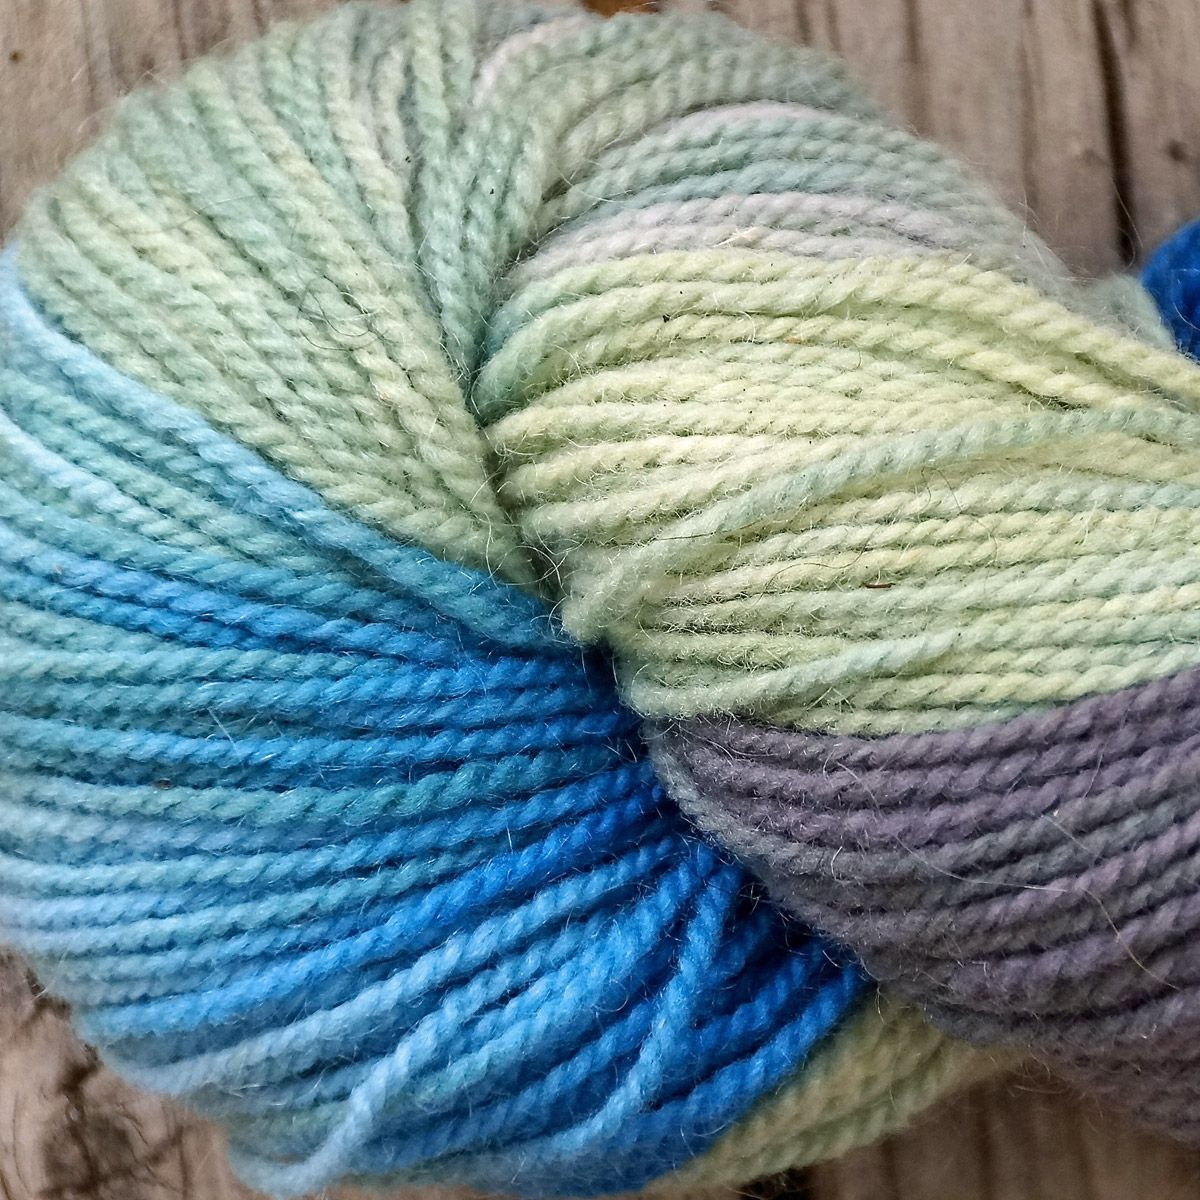 My Blue Ridge Hand-Painted Yarn